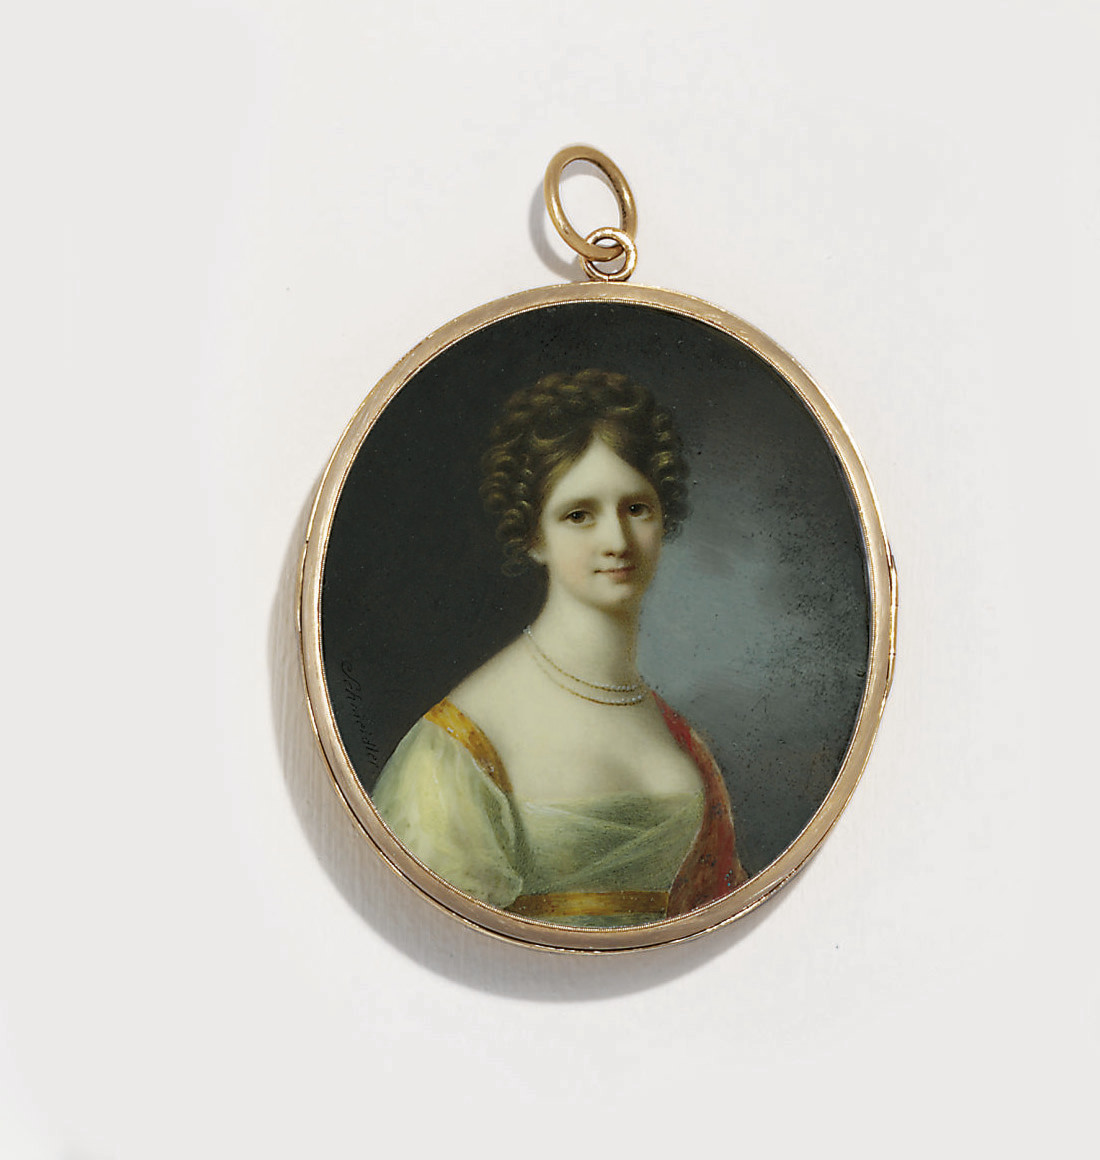 A young lady, in white silk organza dress with orange trim about the shoulder and Empire waist, embroidered persimmon shawl, double-stranded pearl necklace, her chestnut hair plaited and upswept